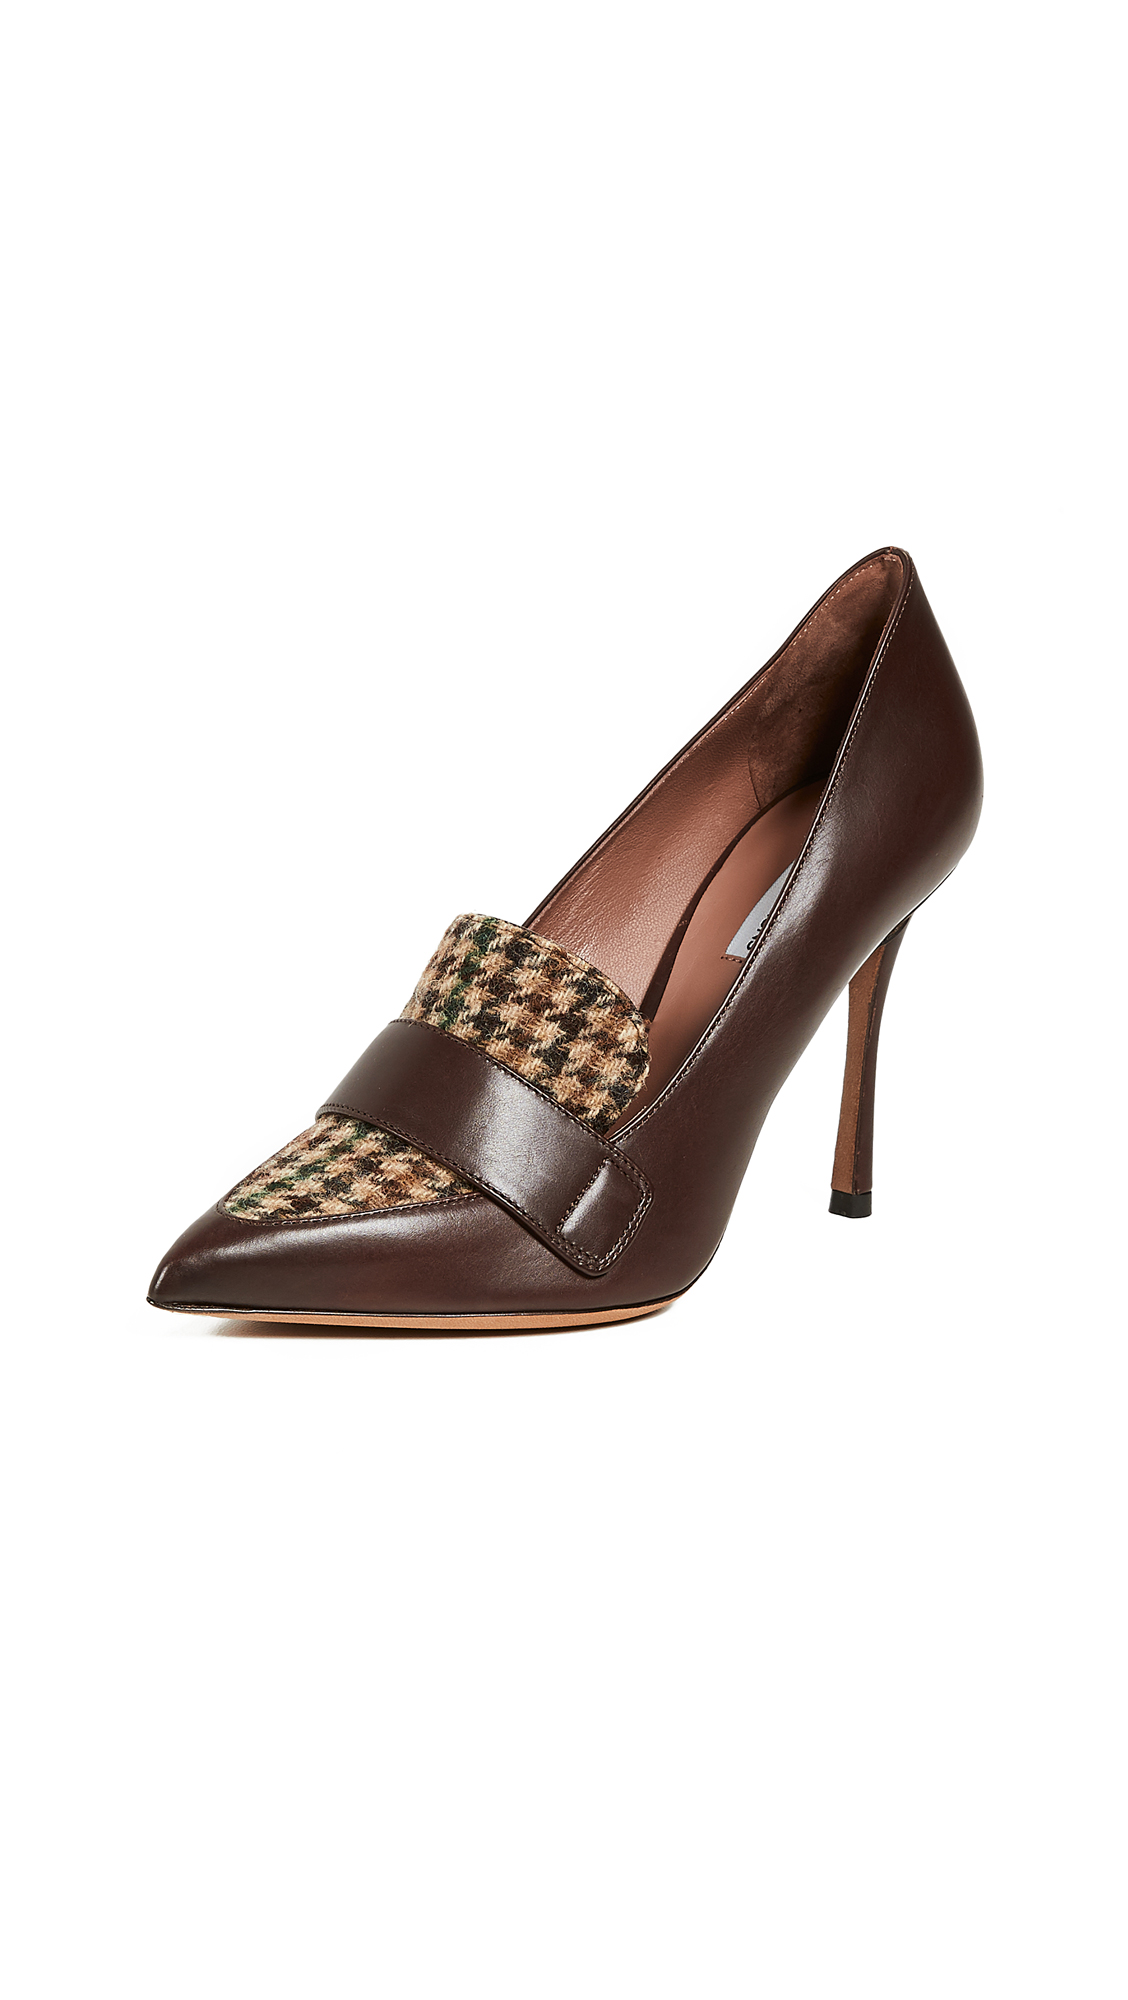 Tabitha Simmons Caspian Tweed Combo Pumps - Brown/Green Tweed